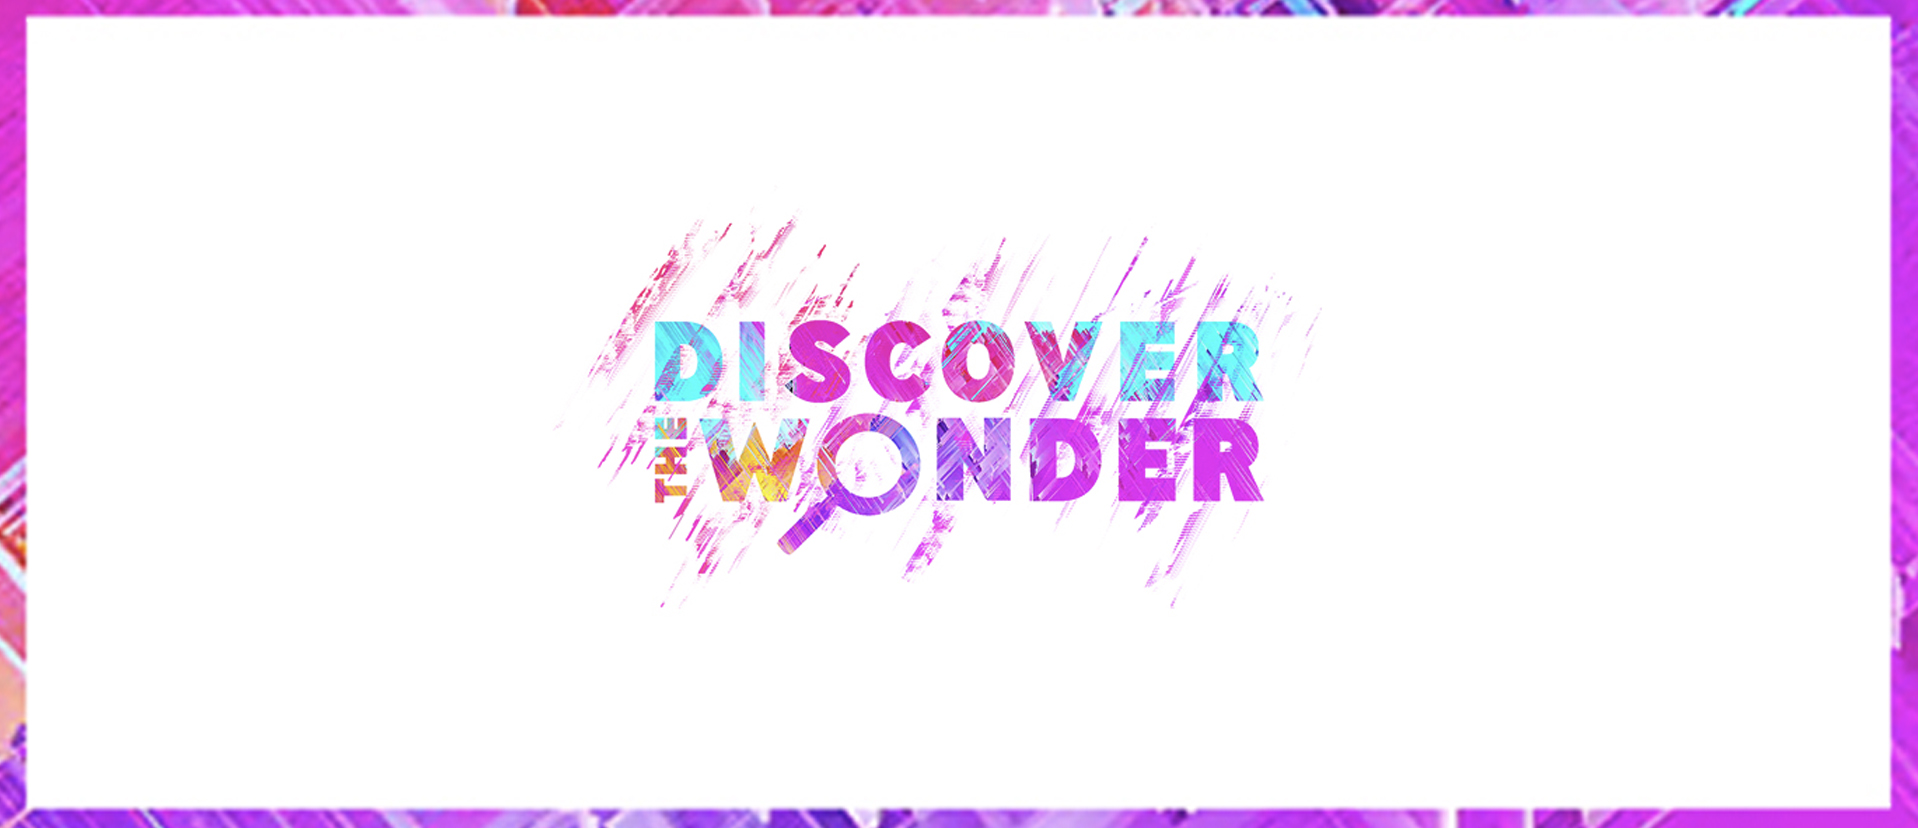 Website_Series_Header_Discover_The_Wonder.jpg